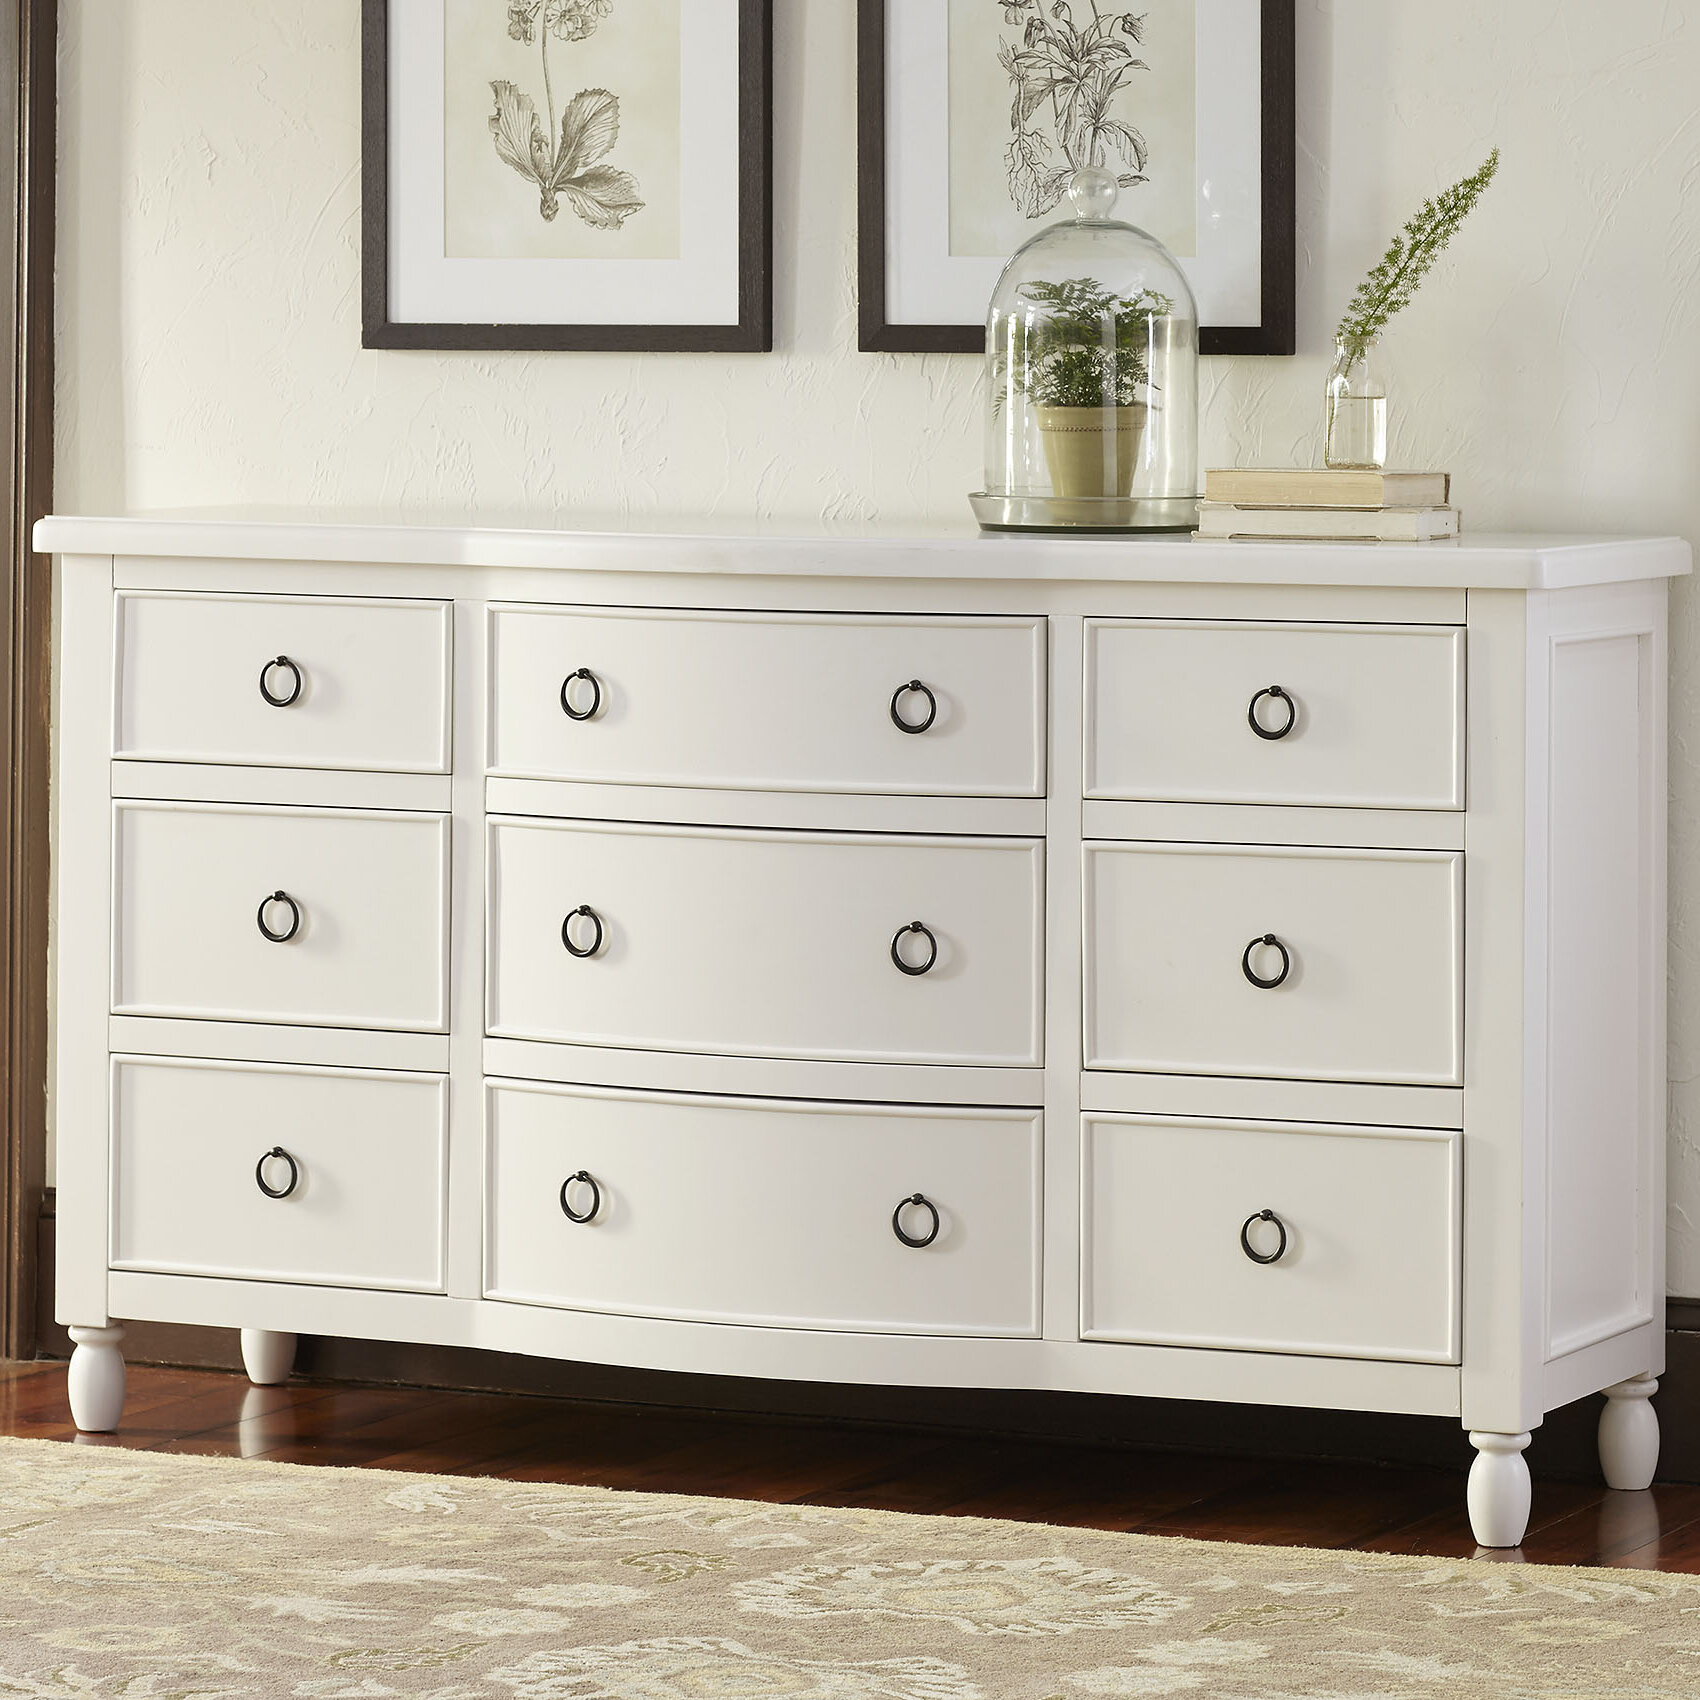 amazon home dresser joints kitchen large chest drawers brooklyn of assembled dovetail co with white metal dp uk fully dressers runners deep